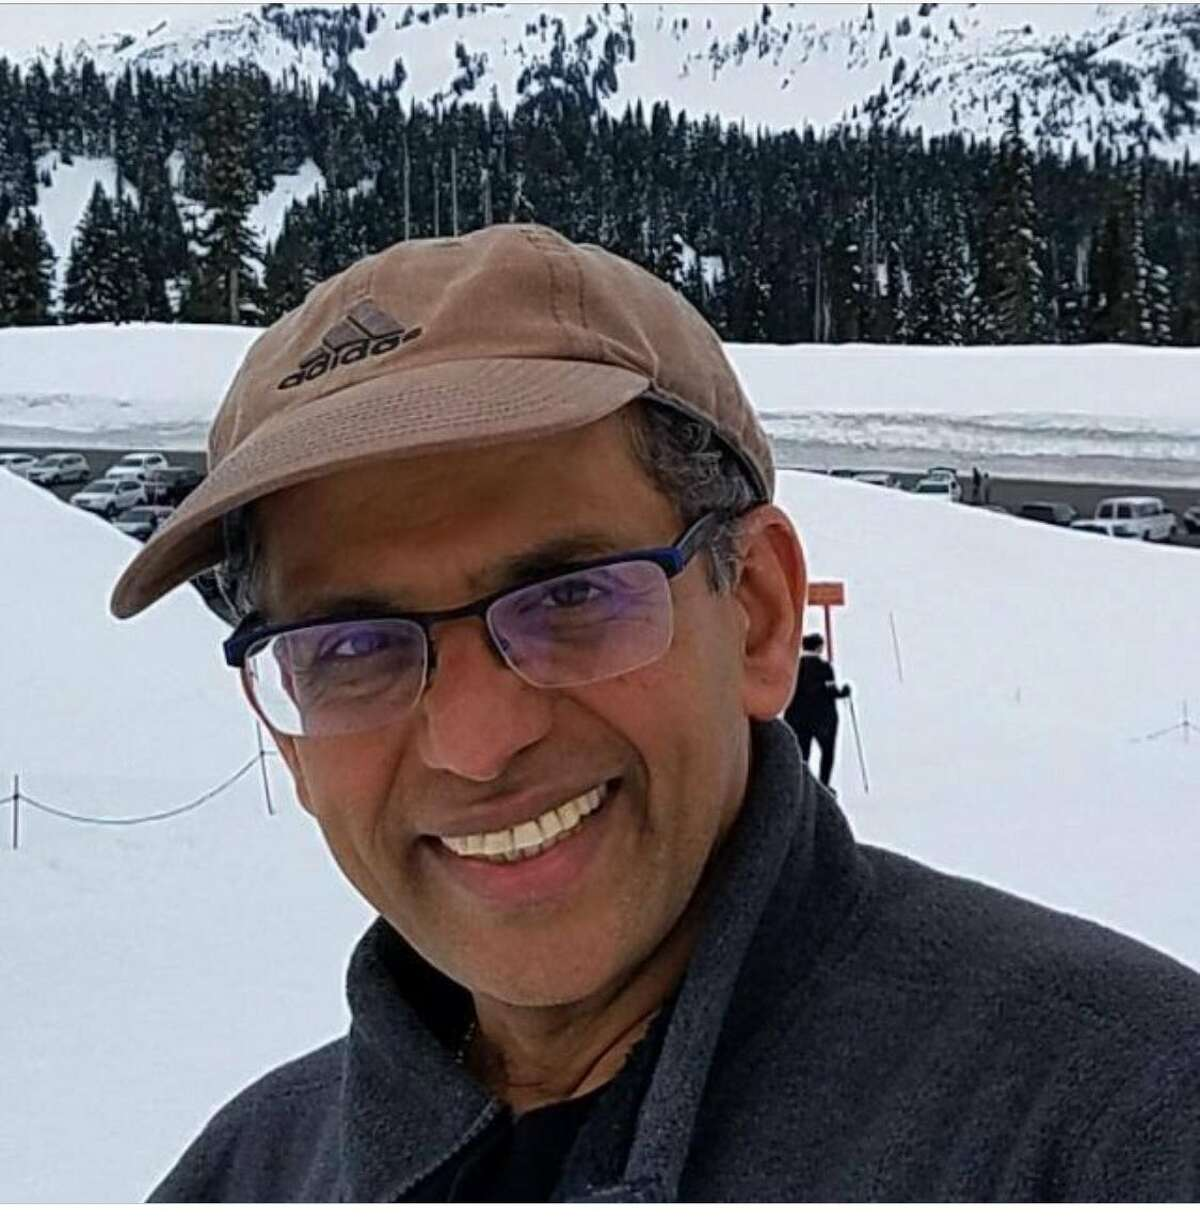 The search is on for Aumaraswami Rao who went missing while he was hiking near Keekwulee Falls June 30. If anybody sees him, they are urged to call 911.